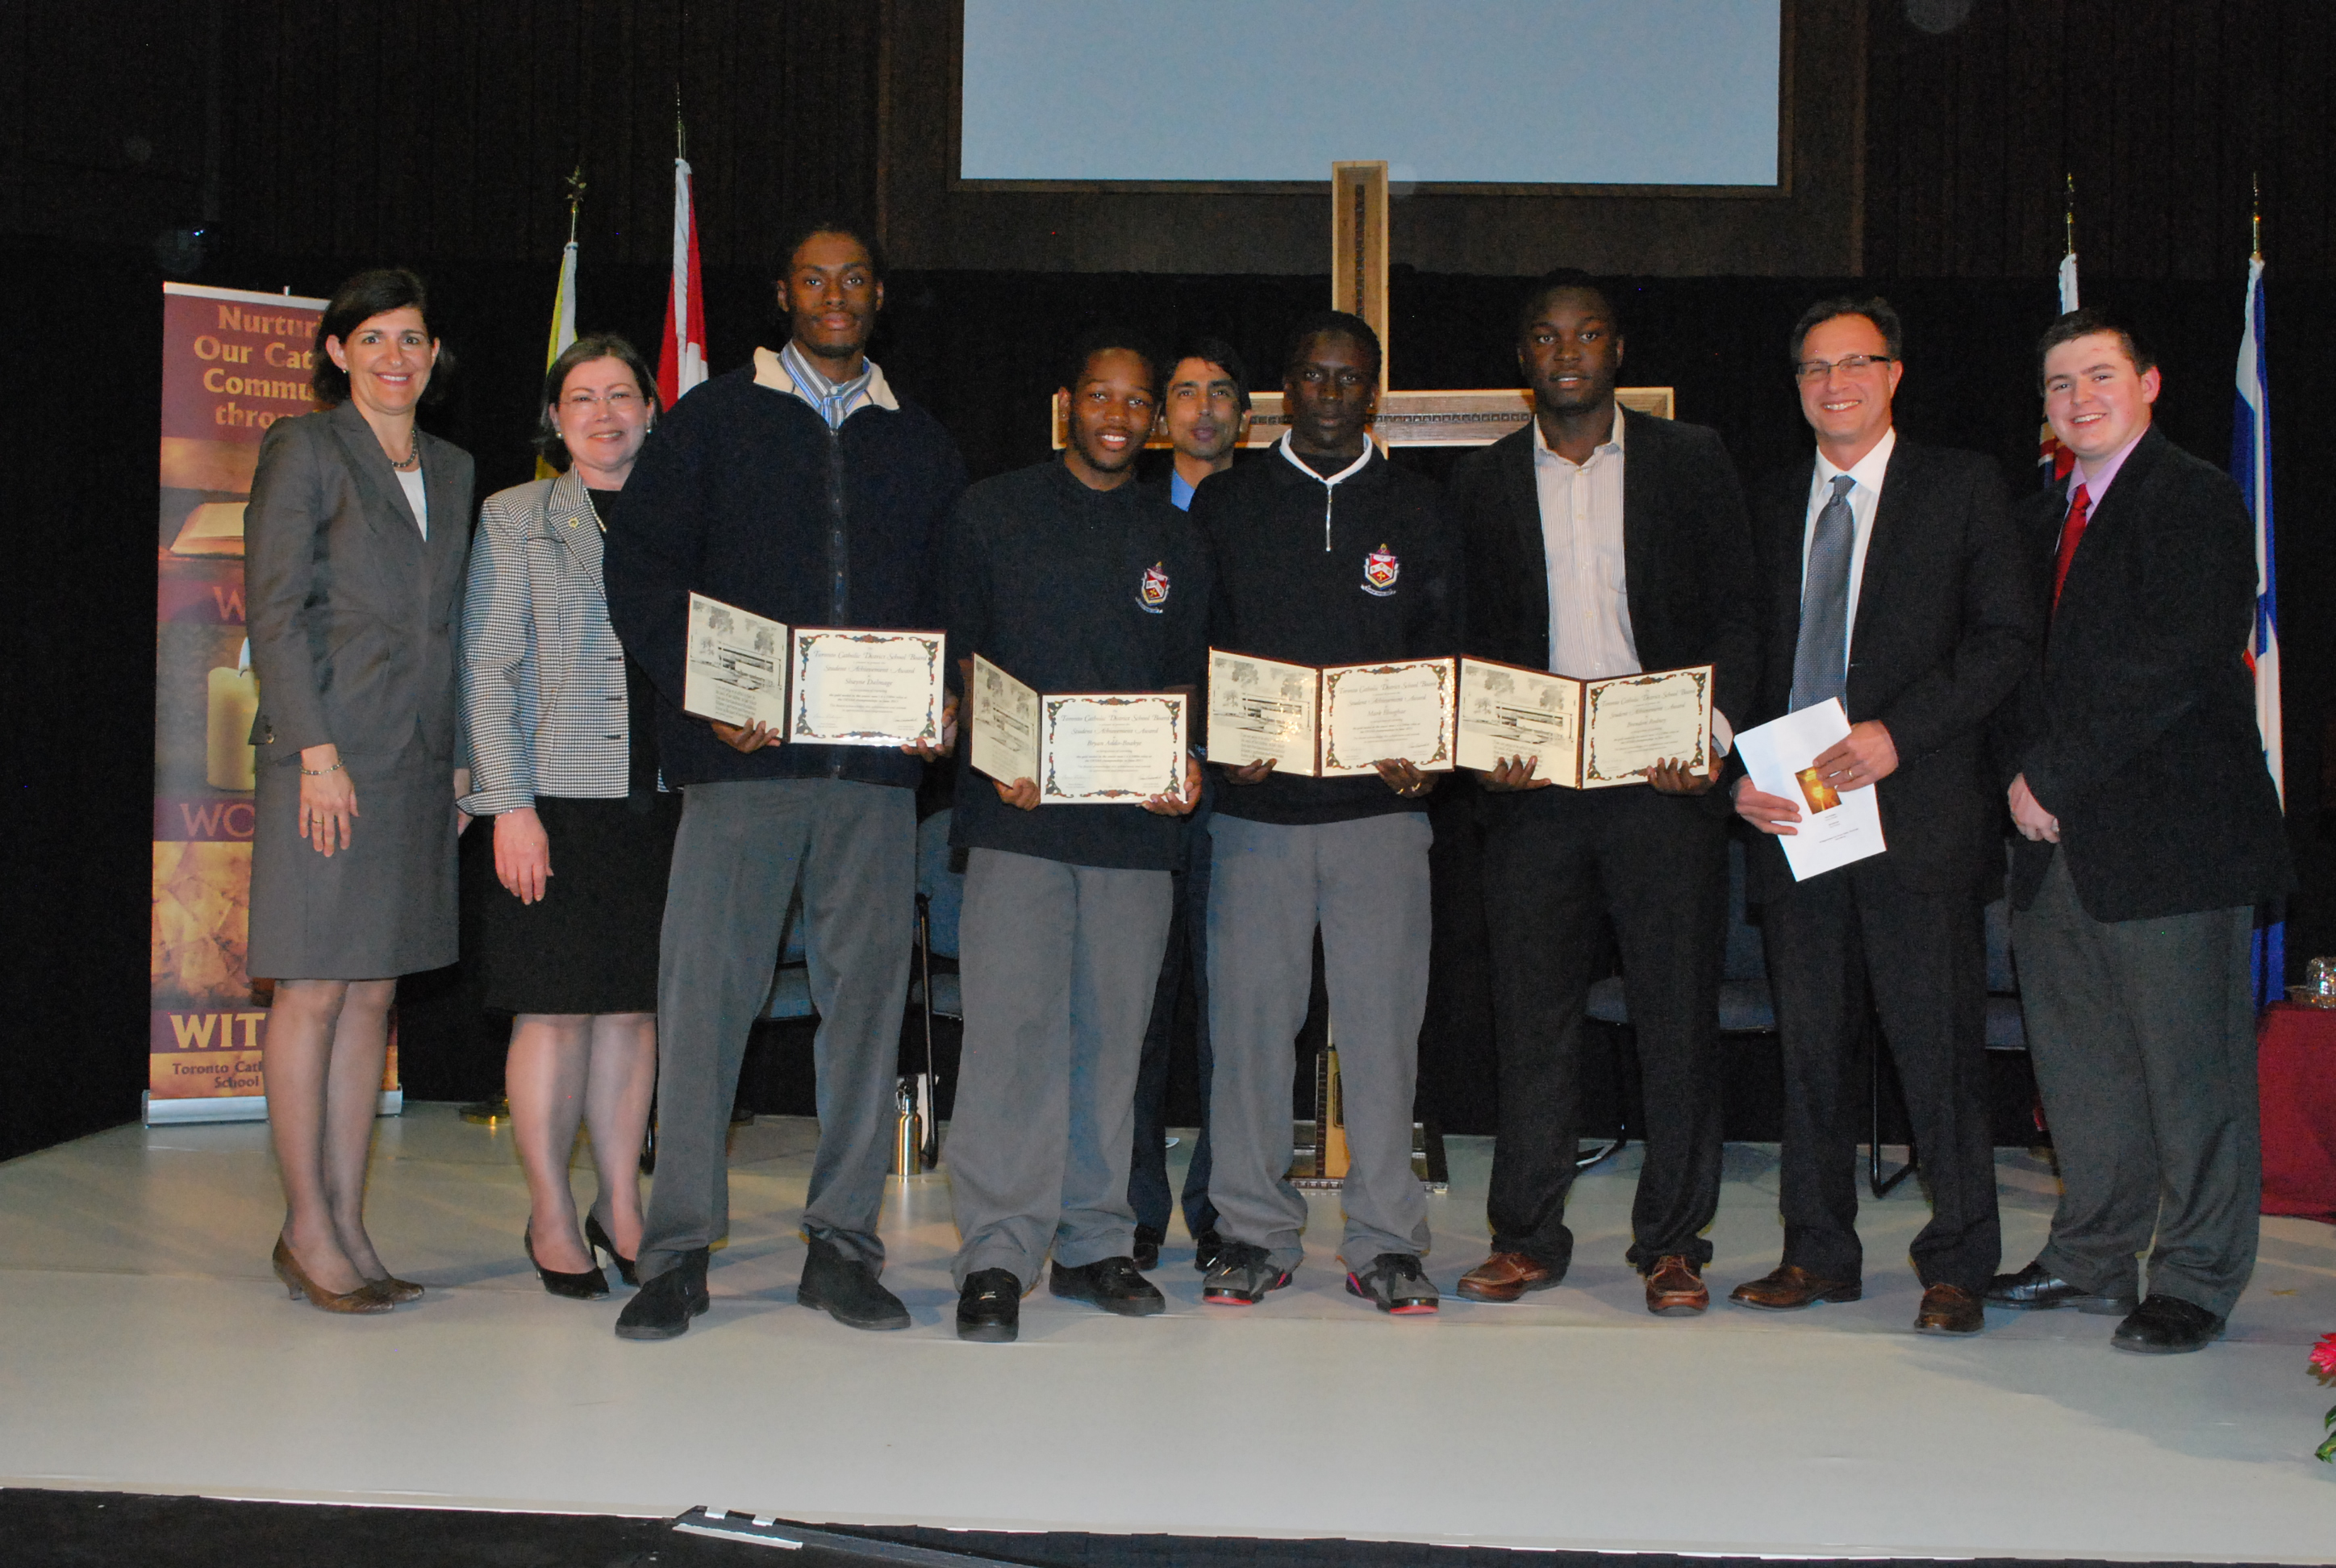 AwardsNight2012_StudentAchievement_Relayteam_FatherHenryCarr.jpg